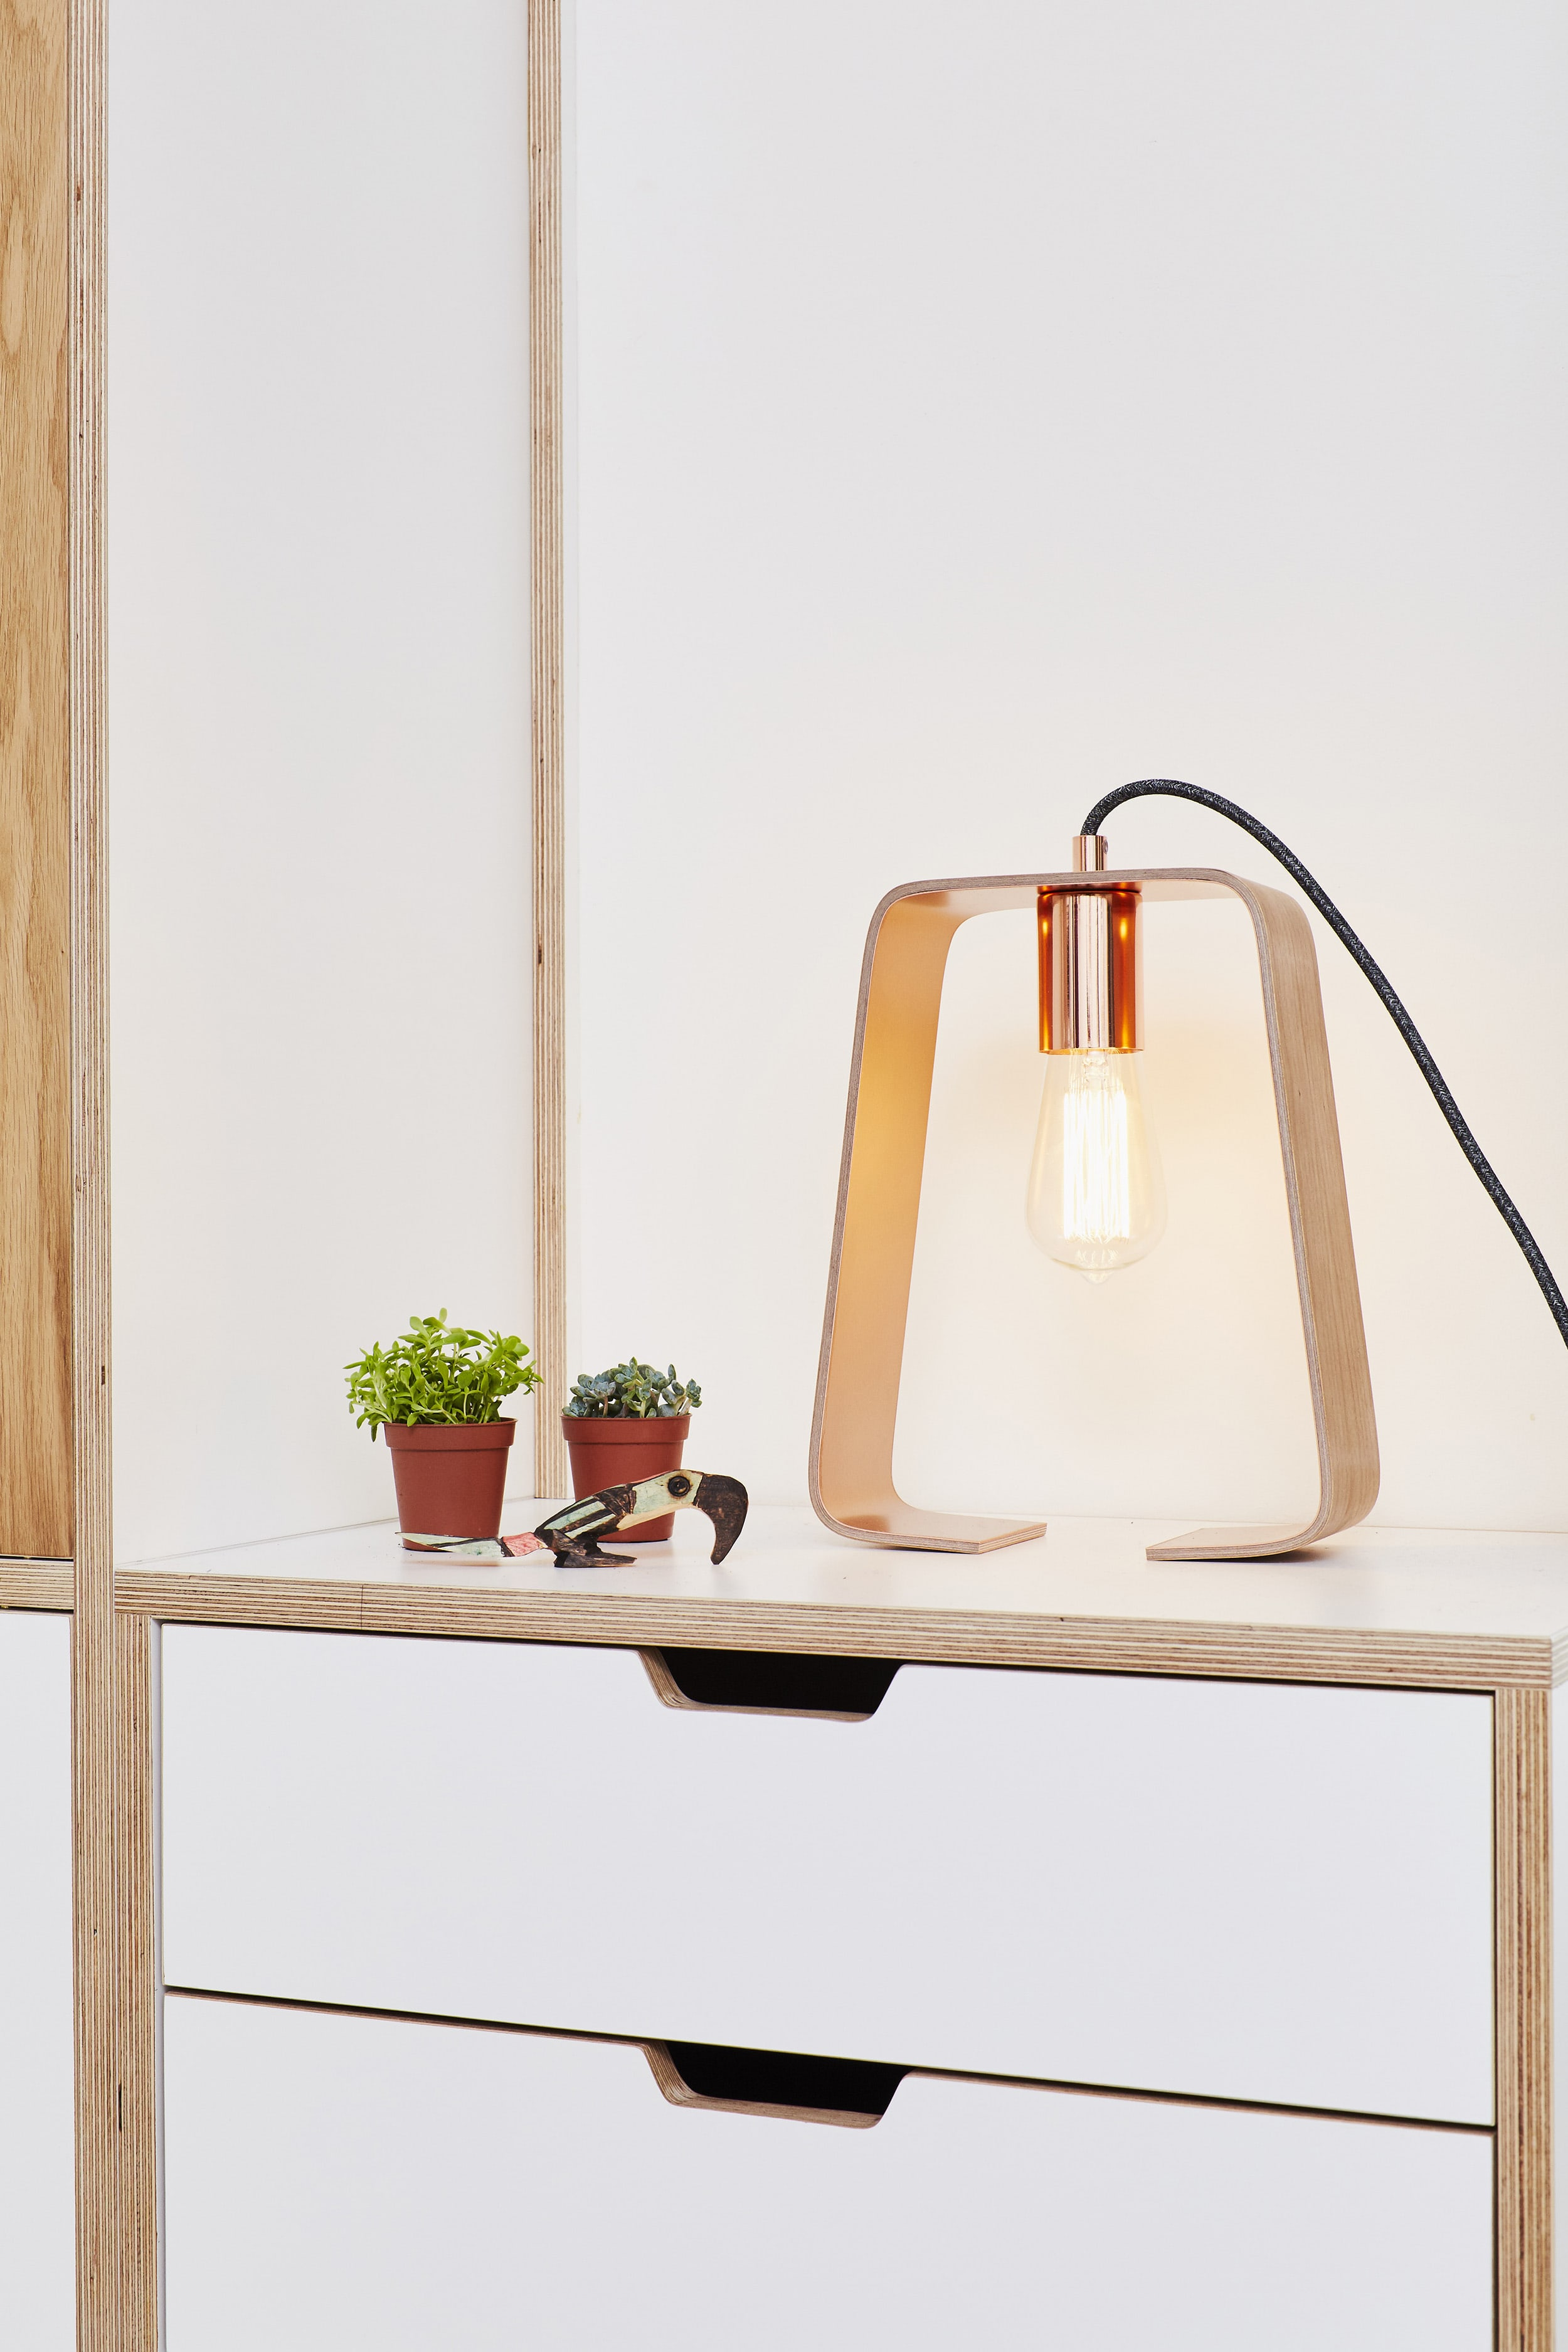 A single fab lamp sitting in the alcove in Lozi's plywood wardrobe in Cass's Home, London E8